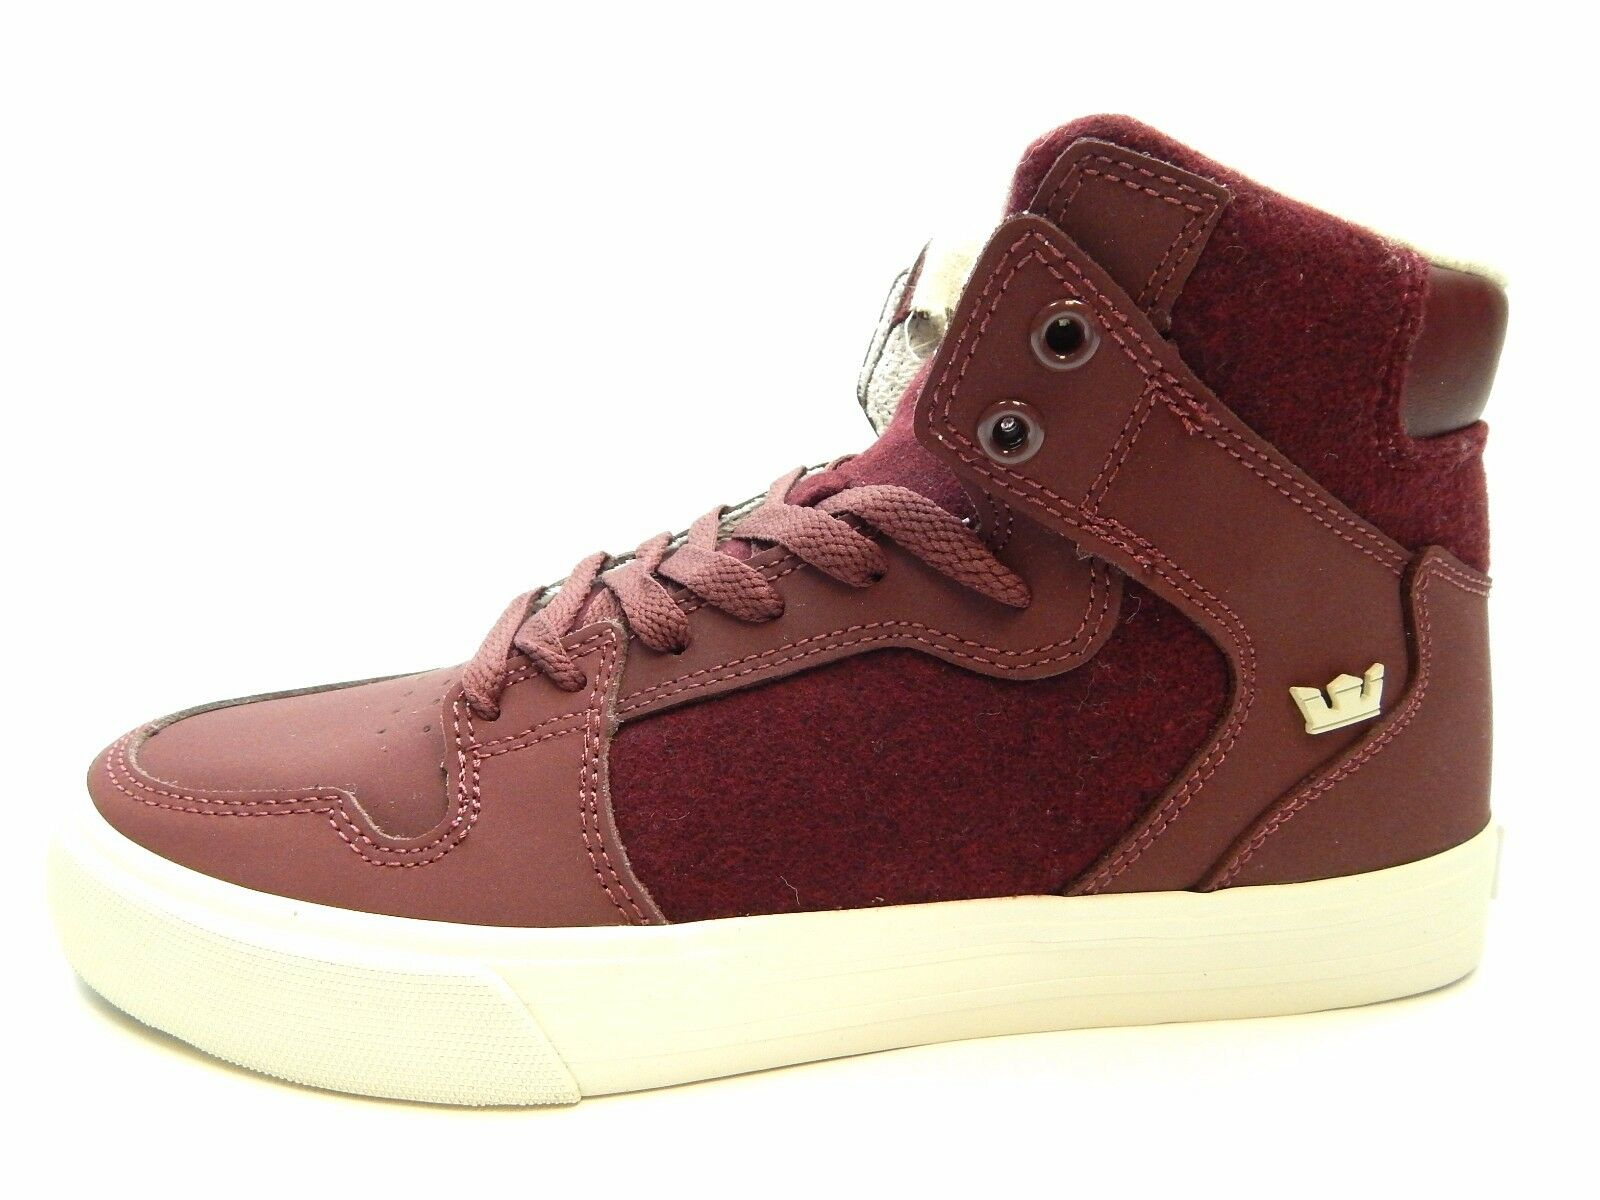 SUPRA VAIDER BURGUNDY WHITE 08009-650-M MEN SHOES SIZE 8.5 TO 12